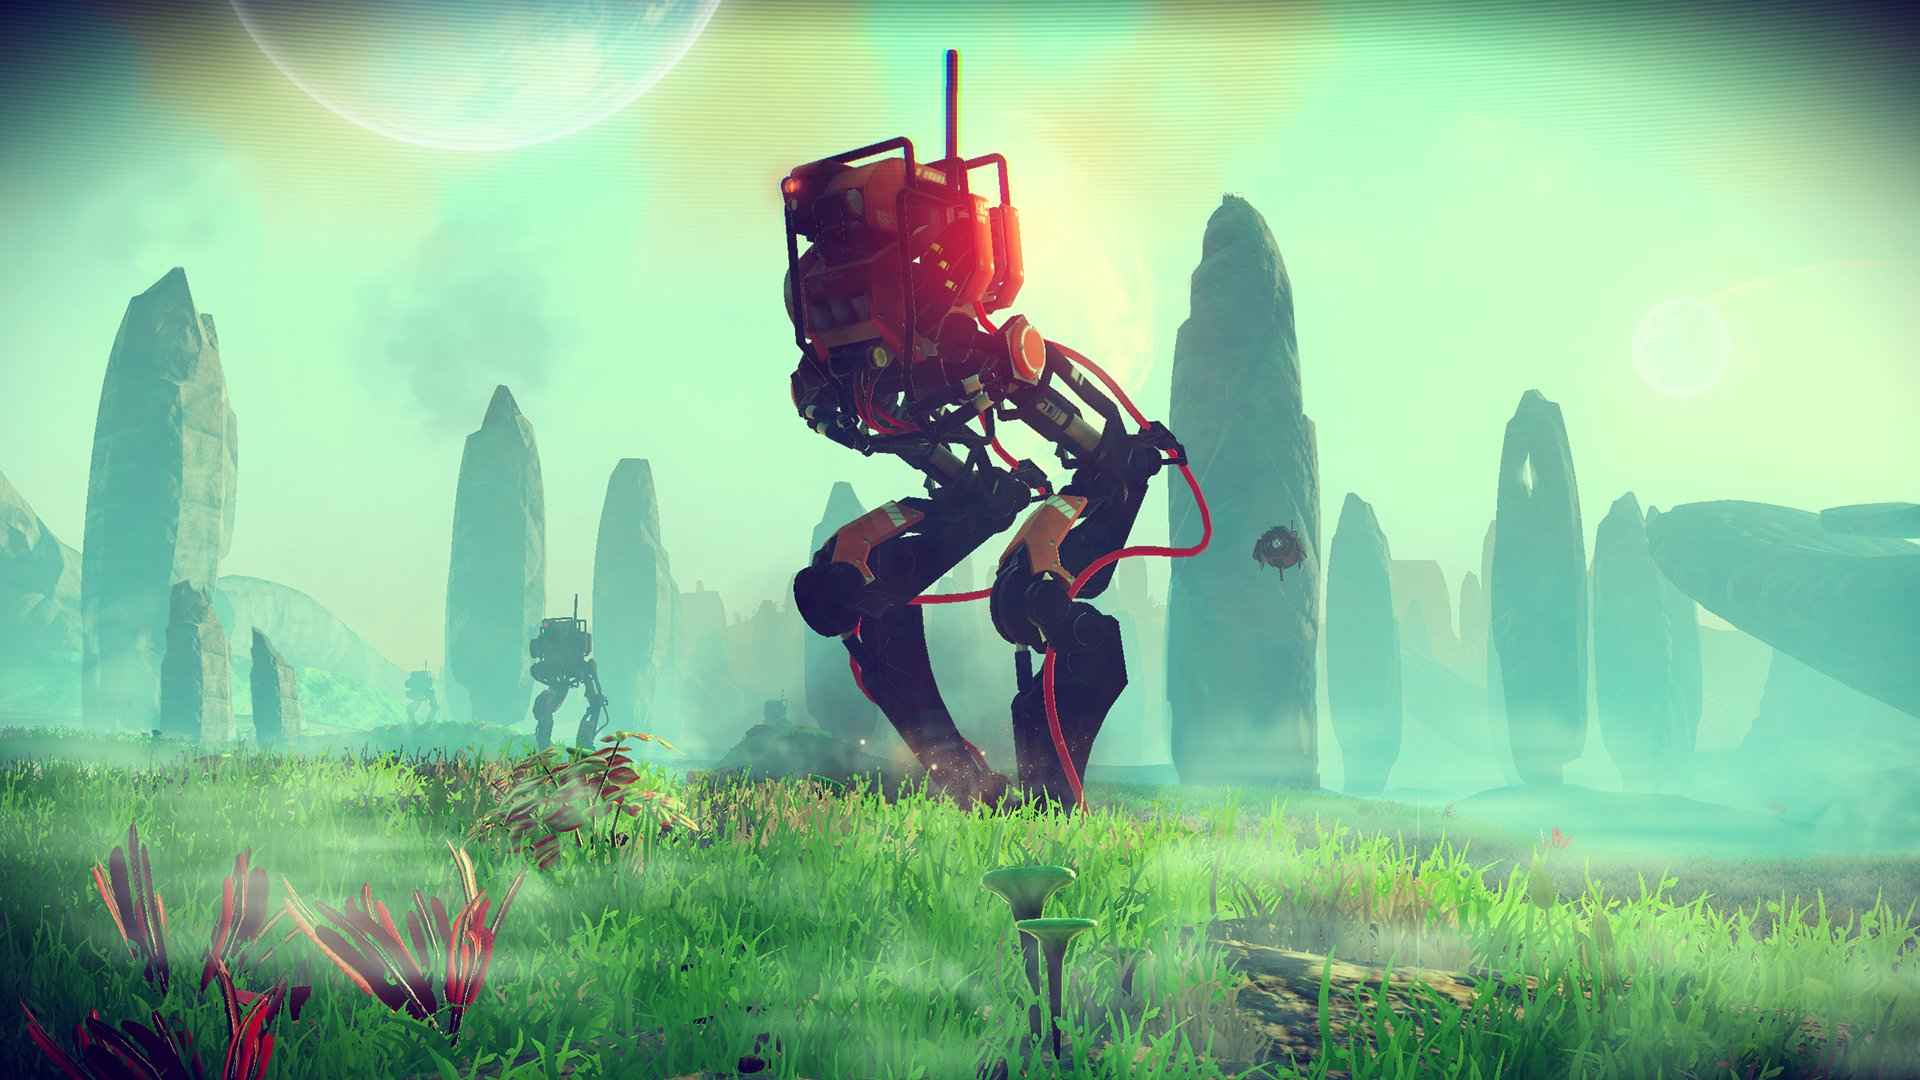 How to Find No Man's Sky Gamma Root